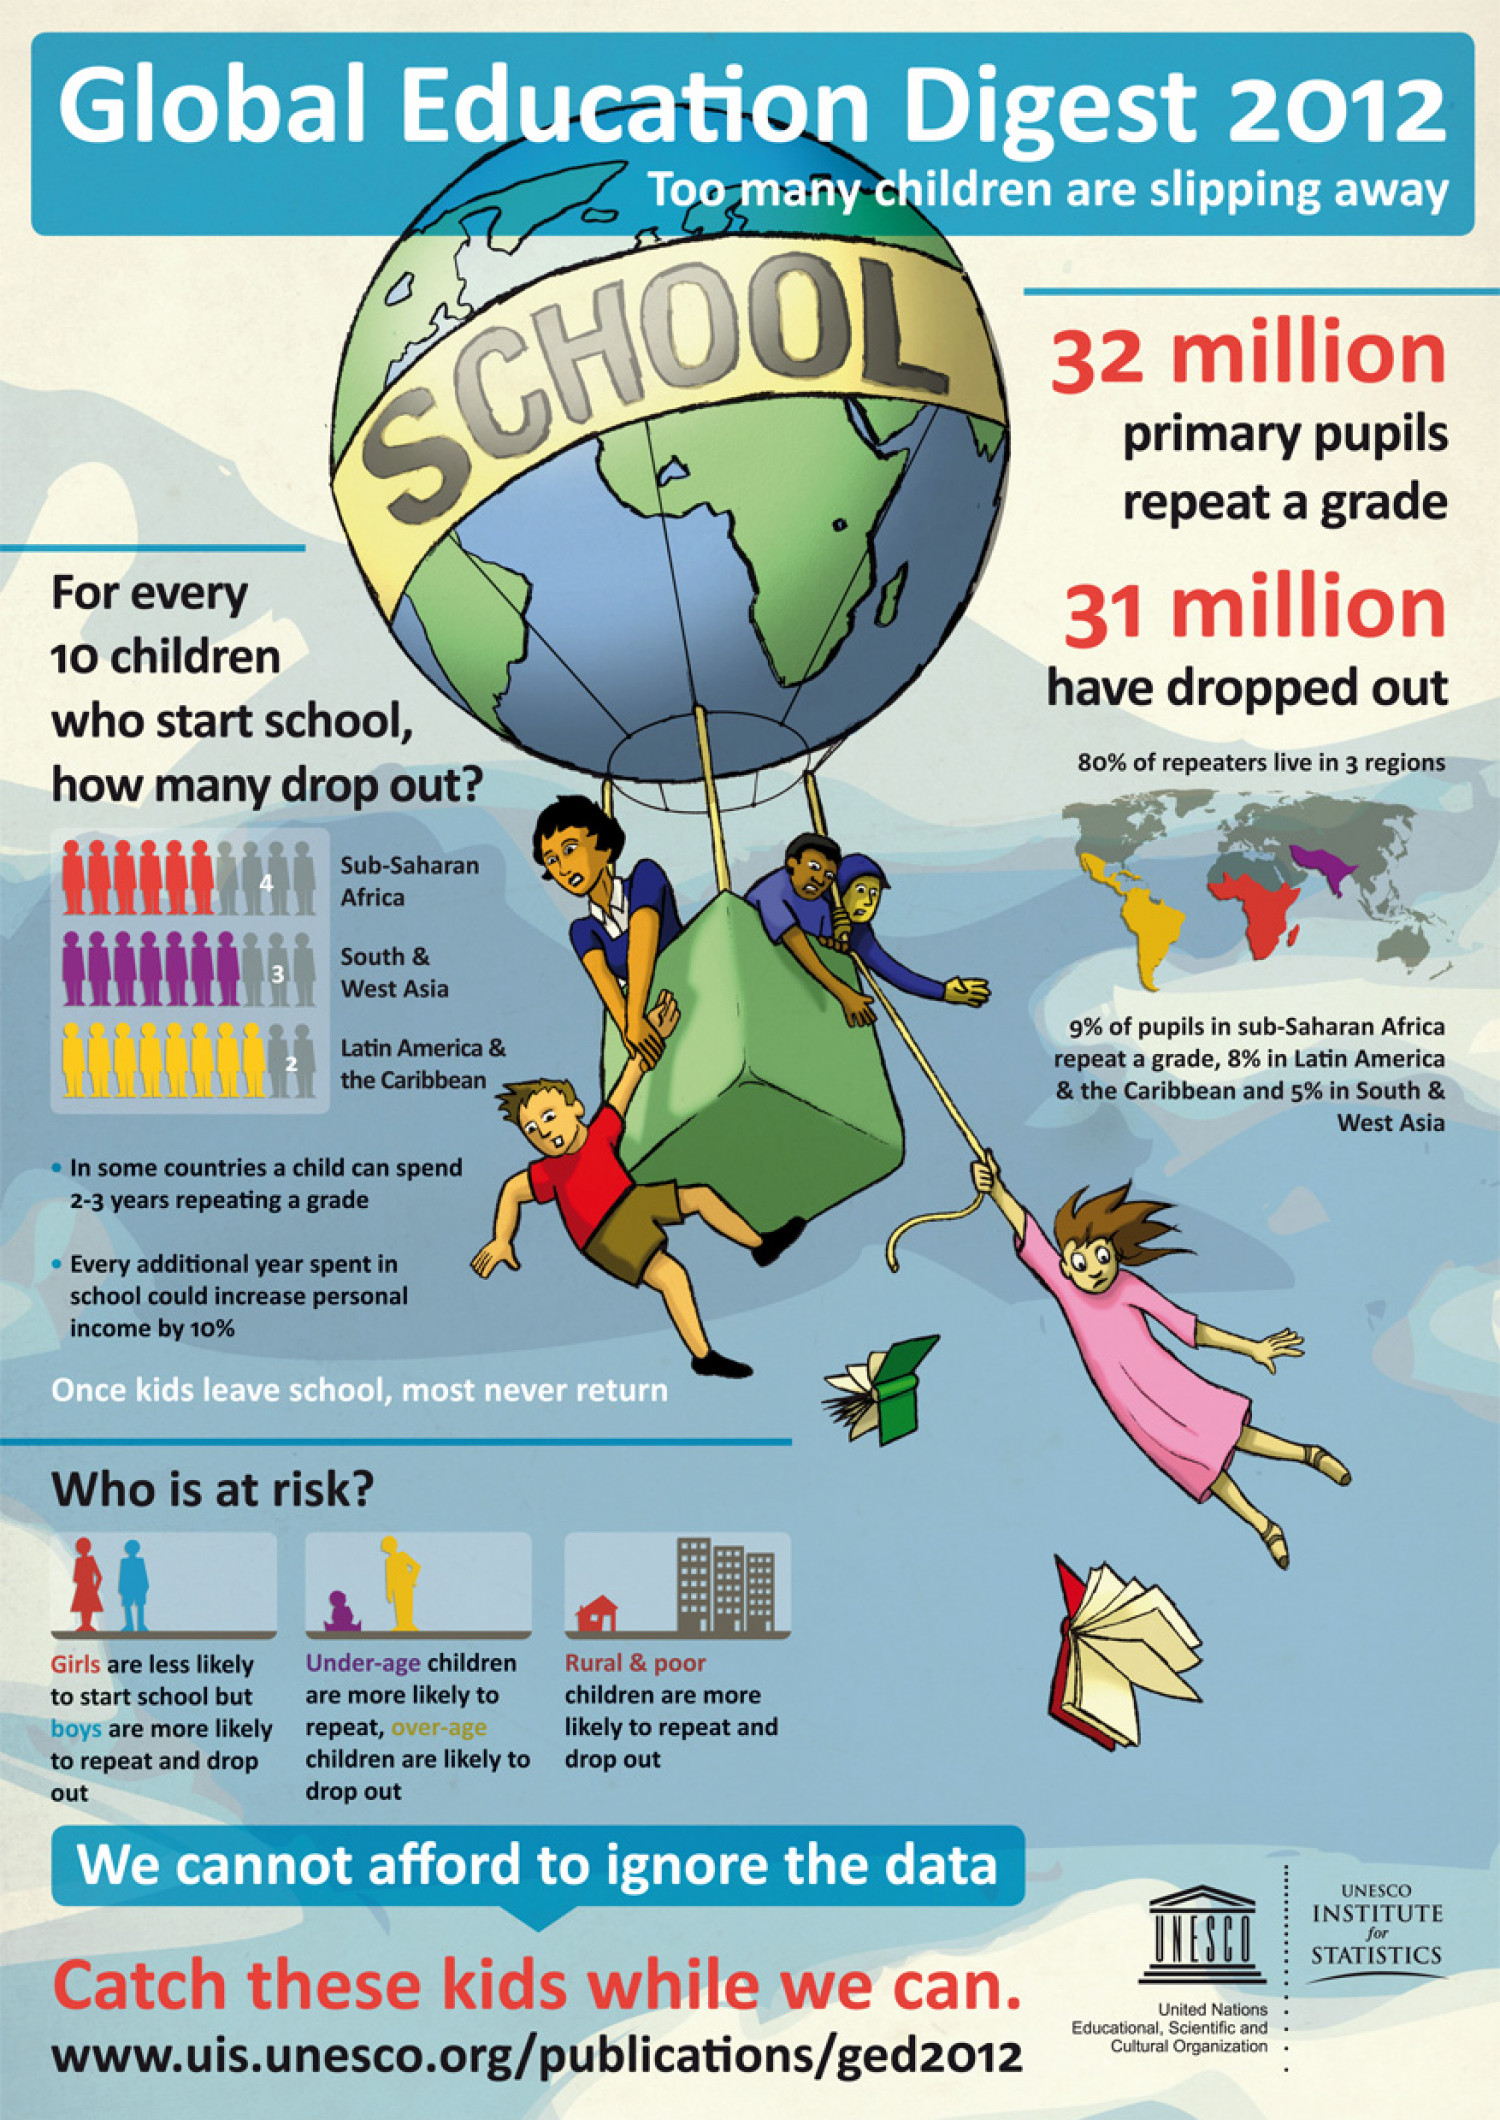 Global Education Digest 2012 Infographic